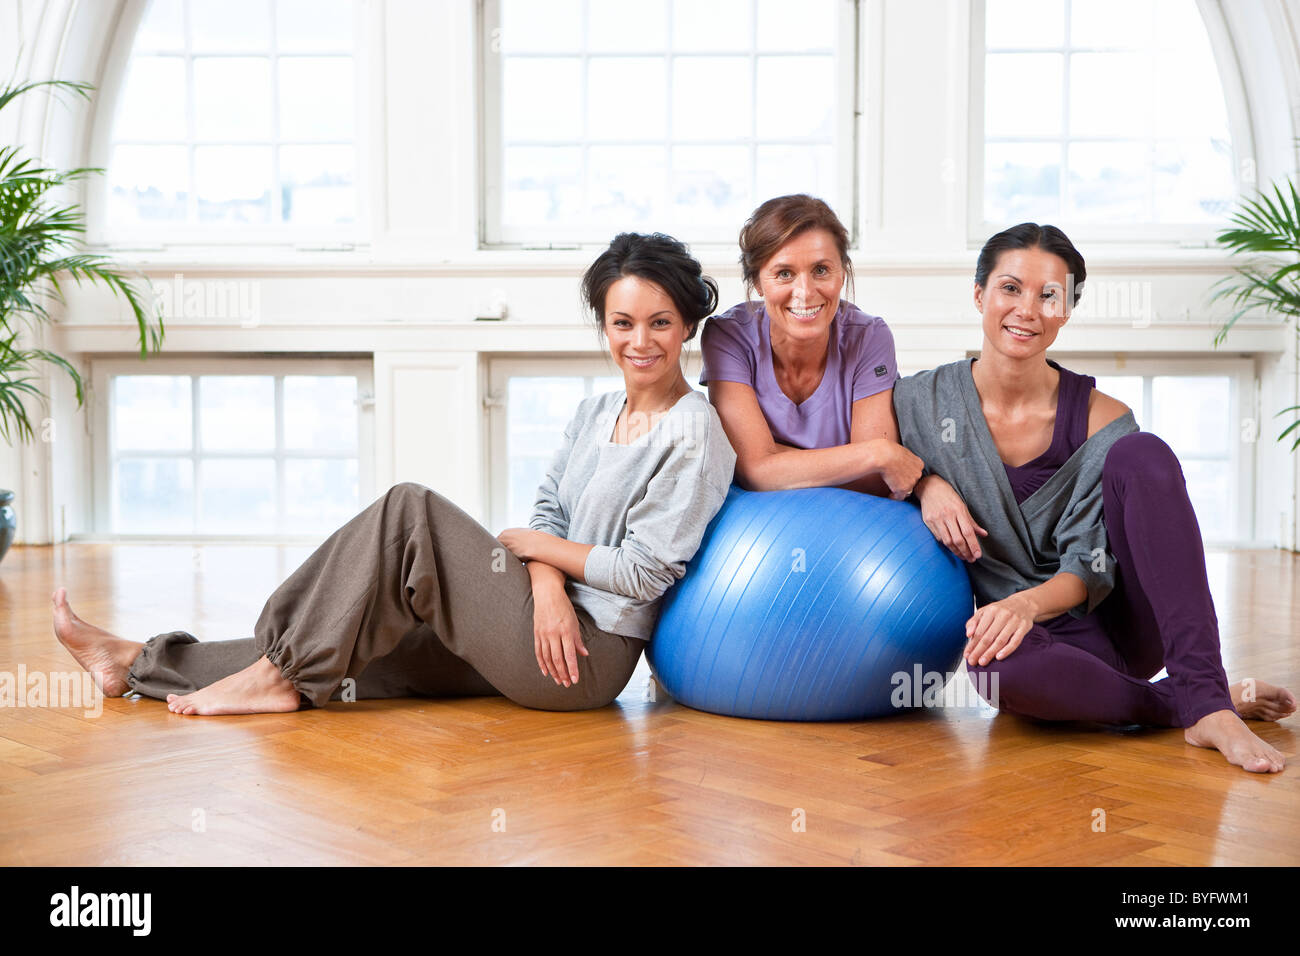 Portrait of three women with fitness ball in gym - Stock Image